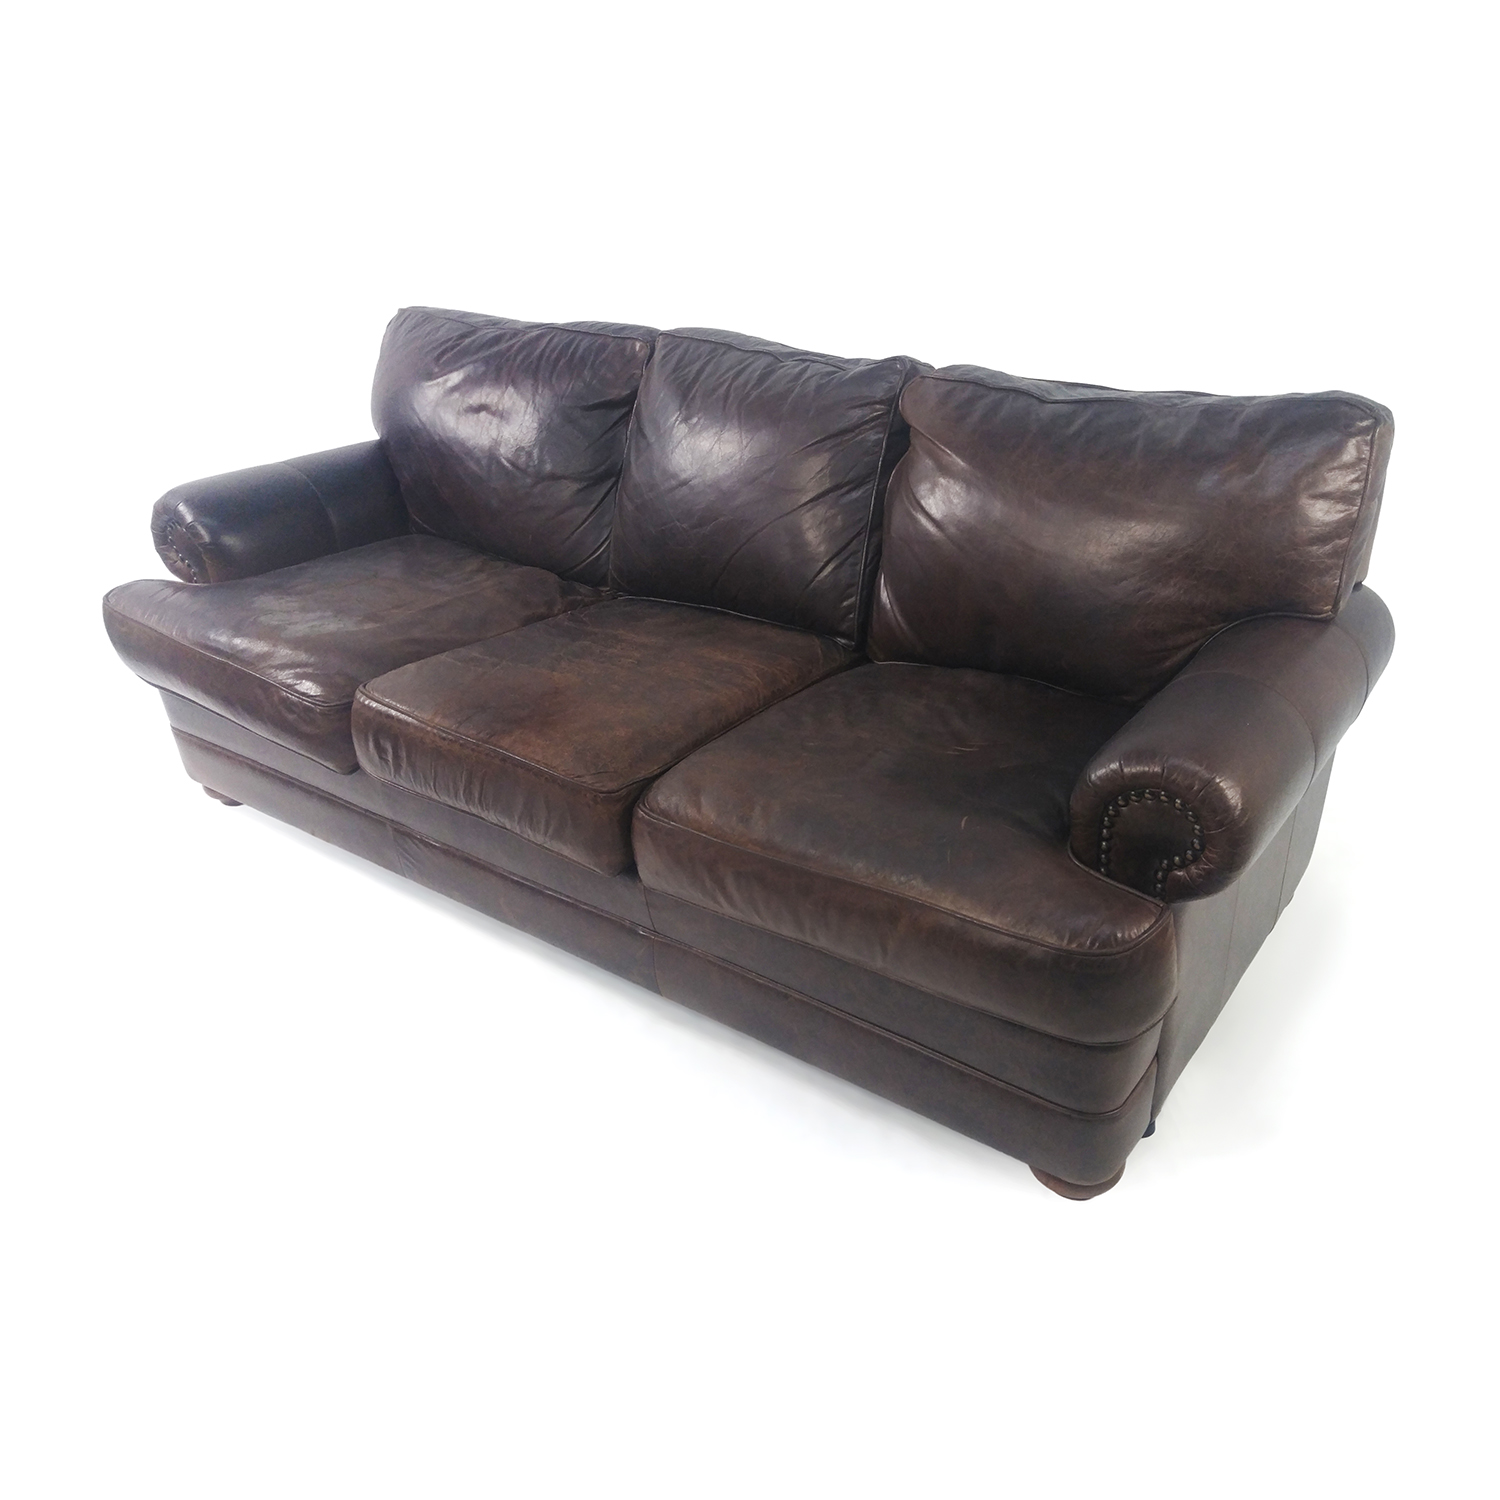 74 off custom brown leather couch sofas. Black Bedroom Furniture Sets. Home Design Ideas